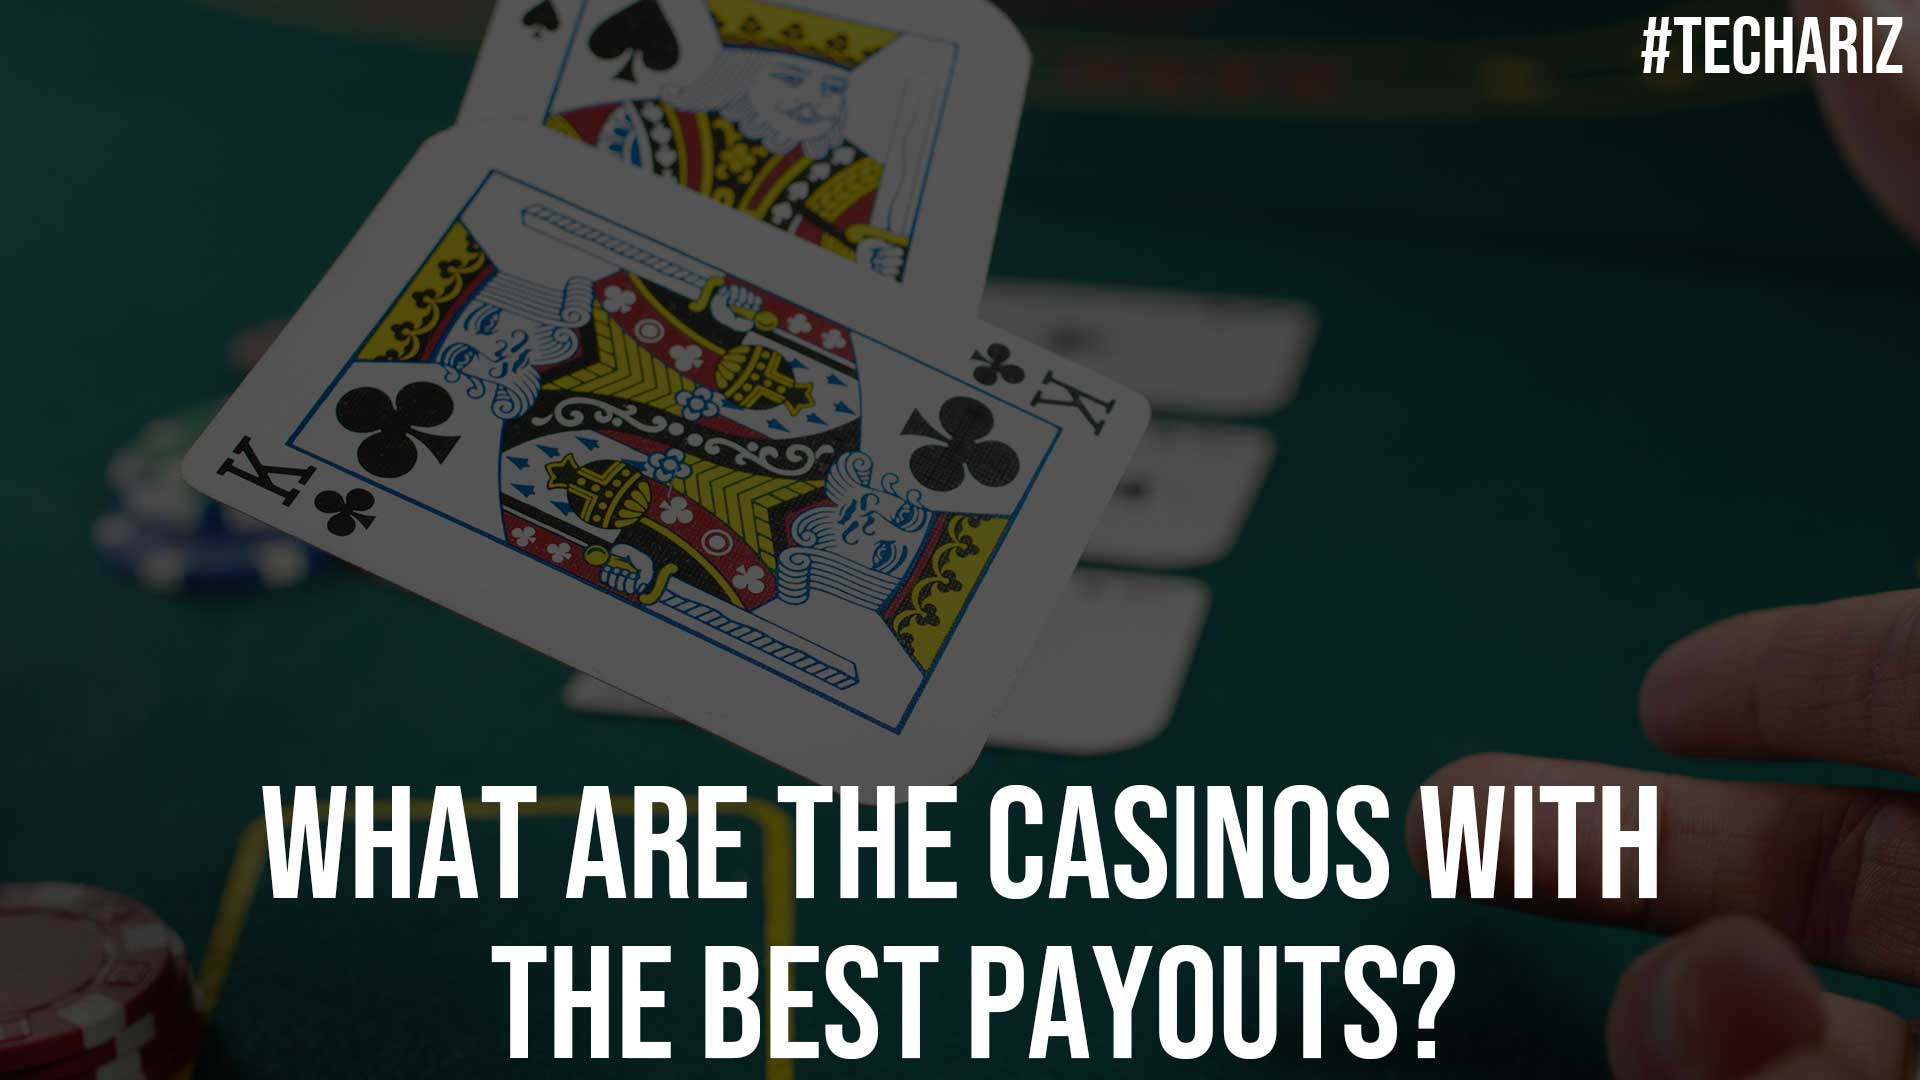 What Are the Casinos with the Best Payouts